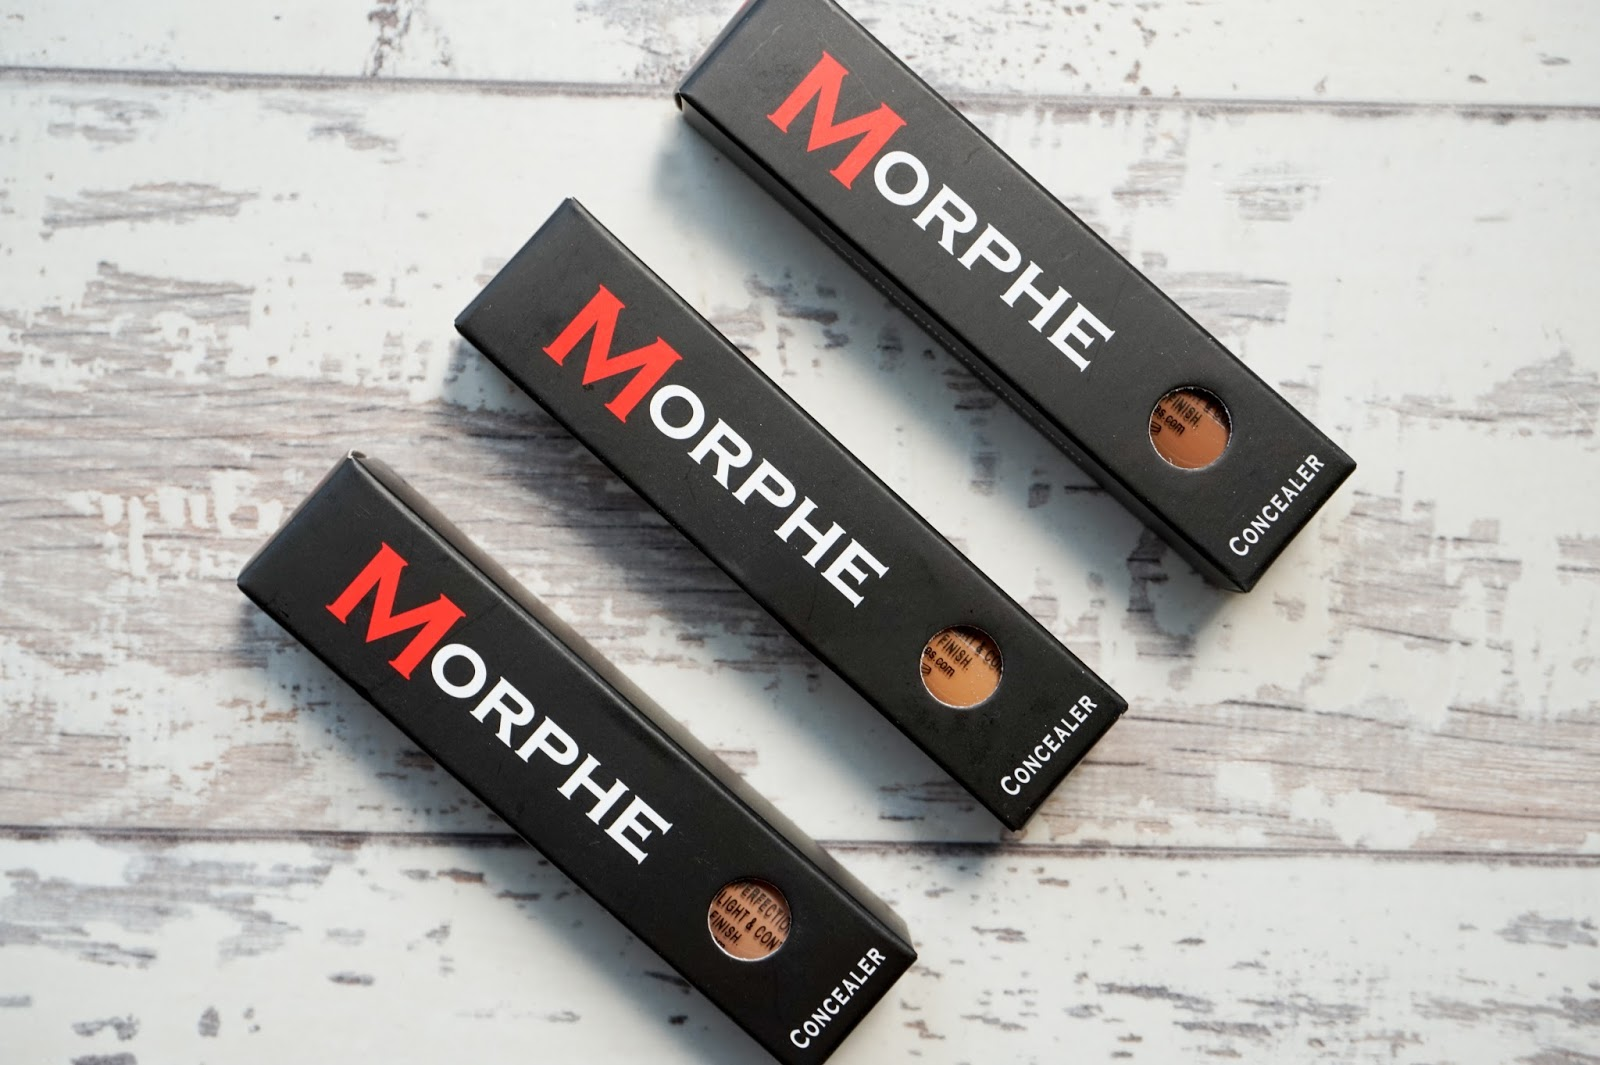 new morphe concealers toast frappe toffee nut swatches dark skin brown beauty discoveries of self blog nataliekayo morphebrushes